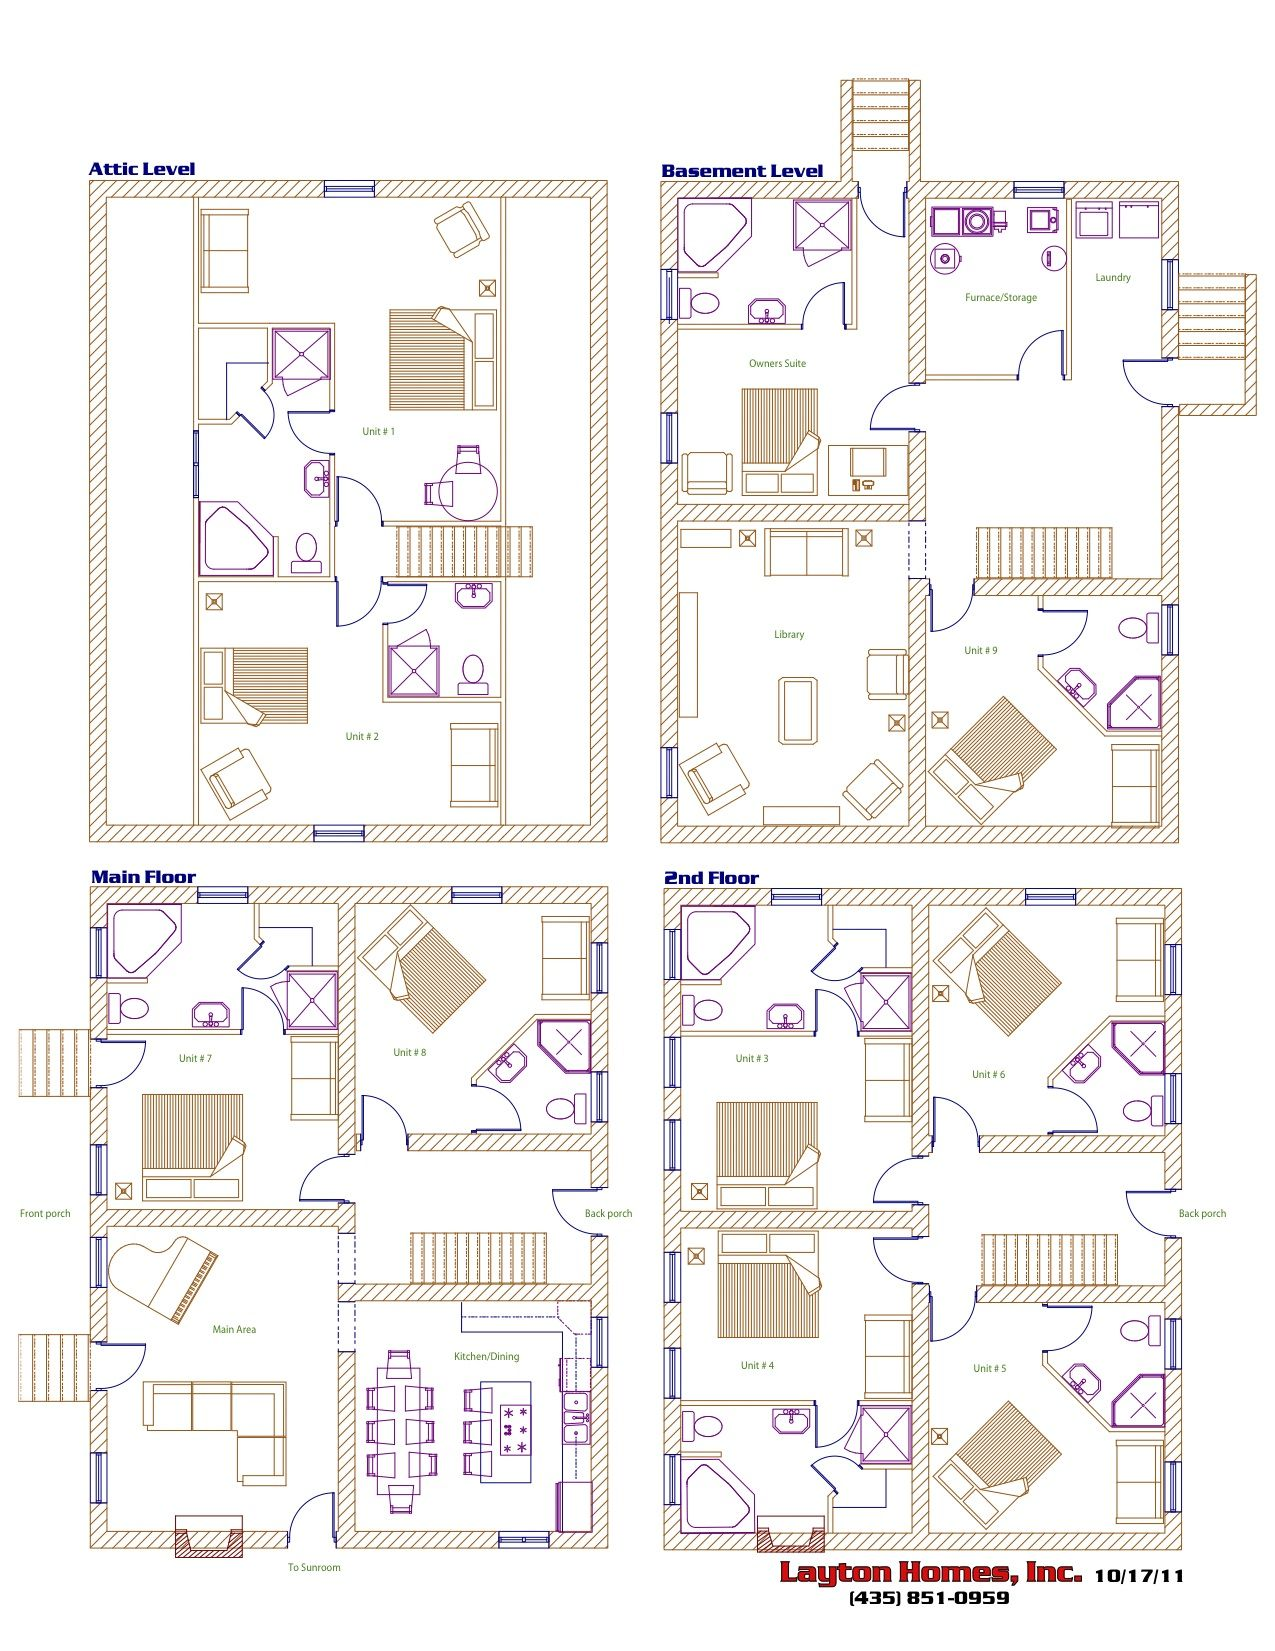 Bed And Breakfast Floor Plans Google Search Hotel Suite Floor Plan Small House Floor Plans Hotel Floor Plan